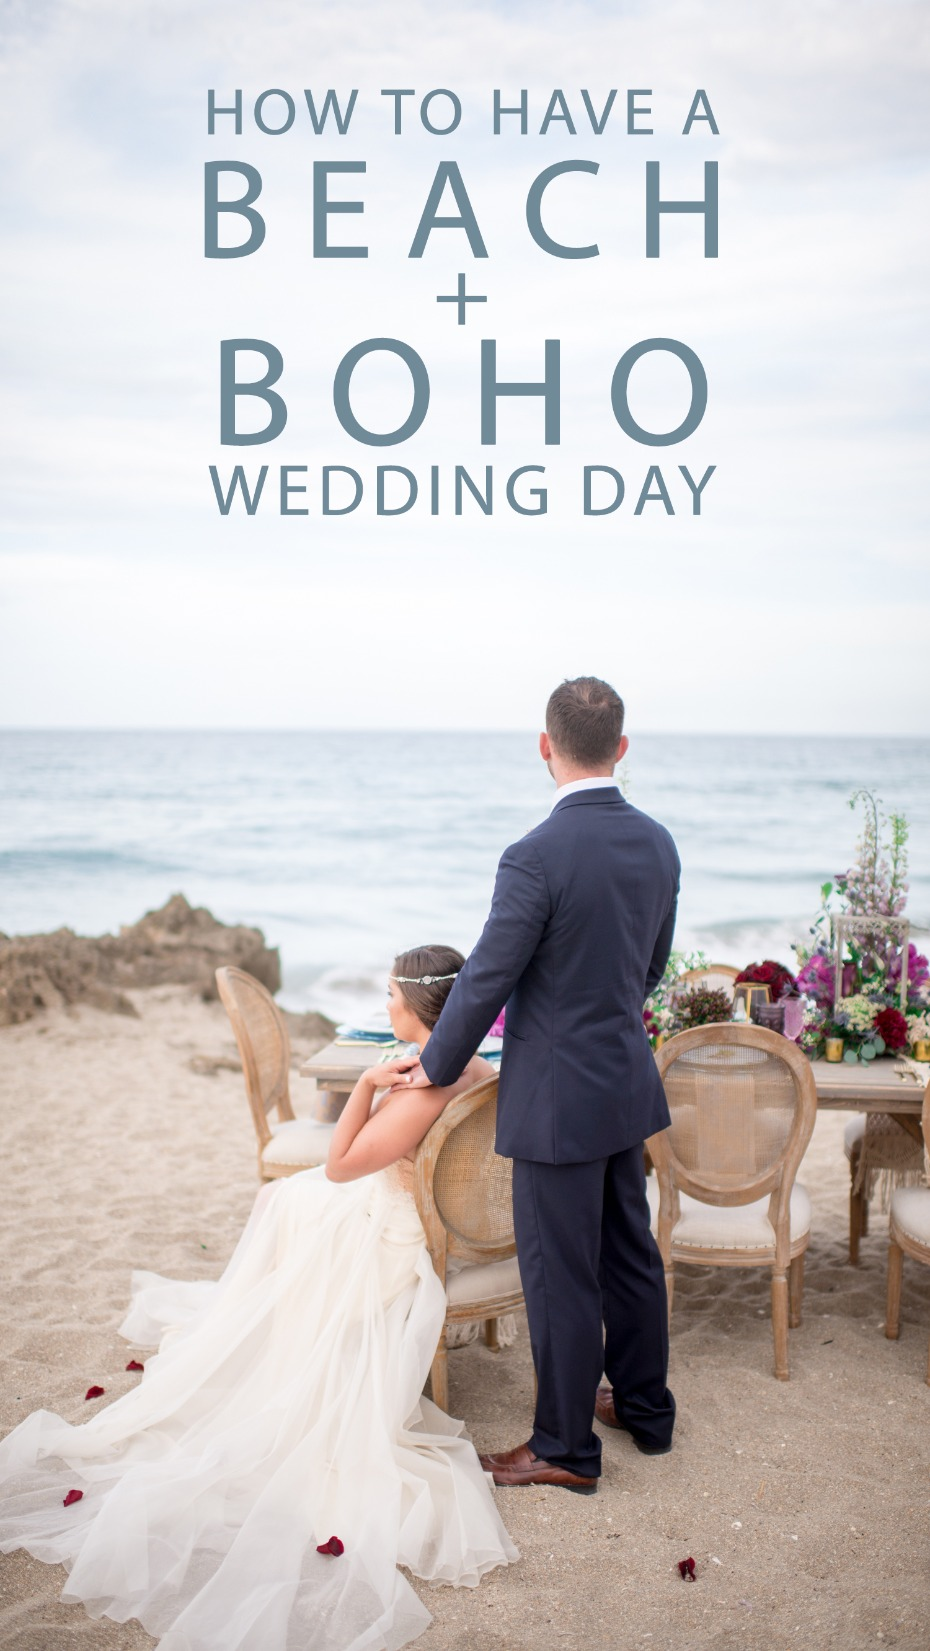 how to have a beach boho wedding day